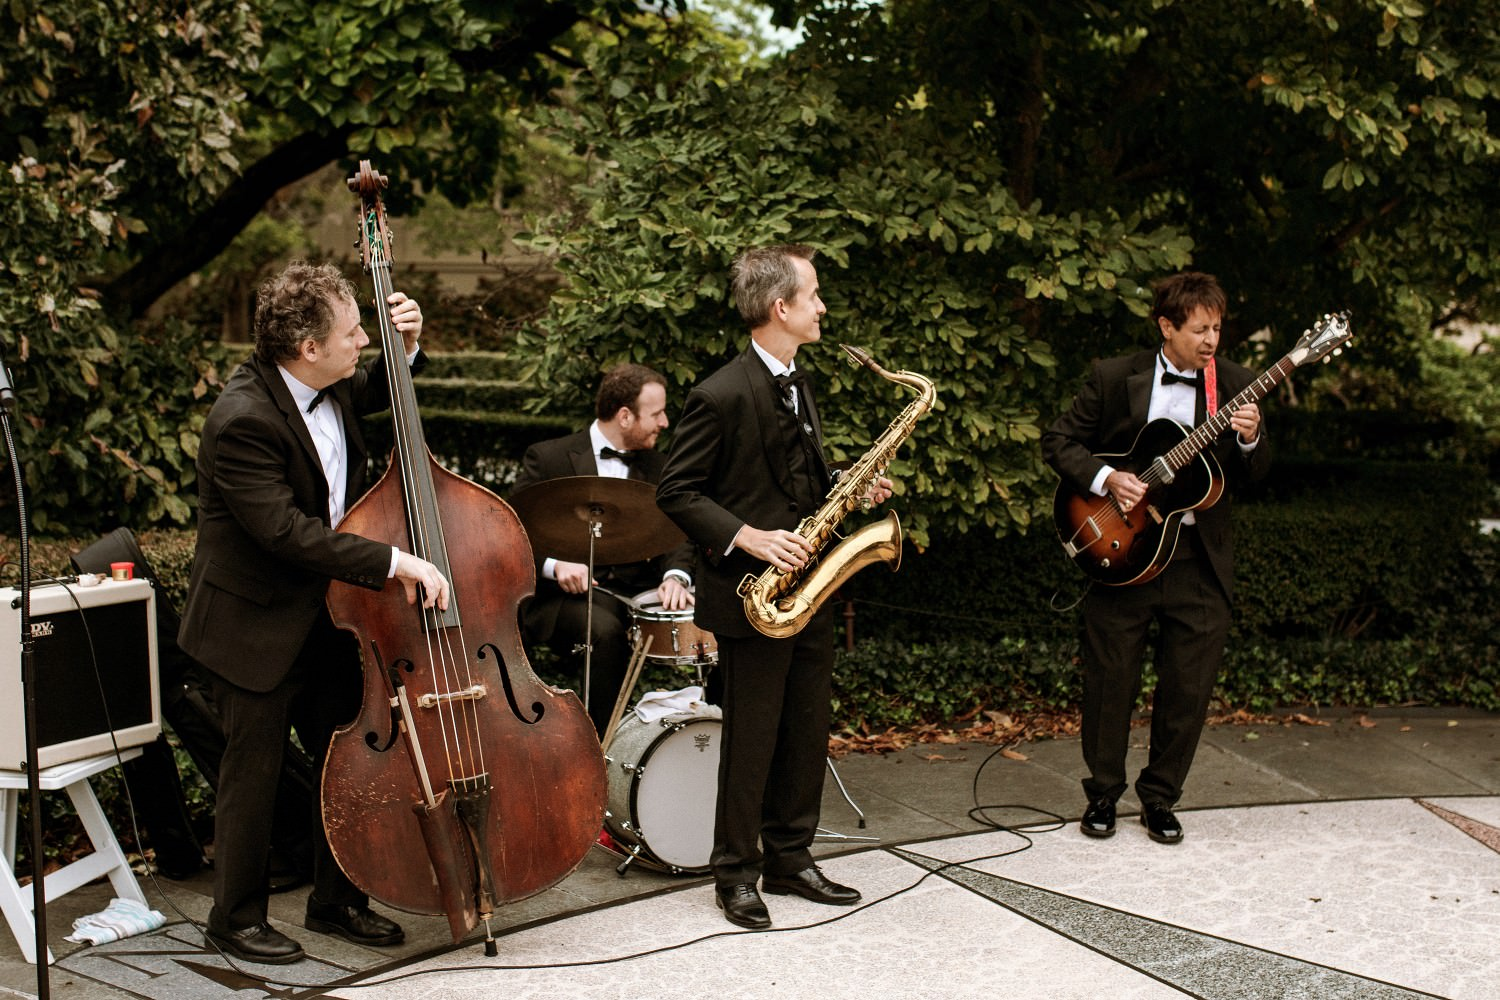 A live band plays at the wedding ceremony at the Brooklyn Botanic Garden